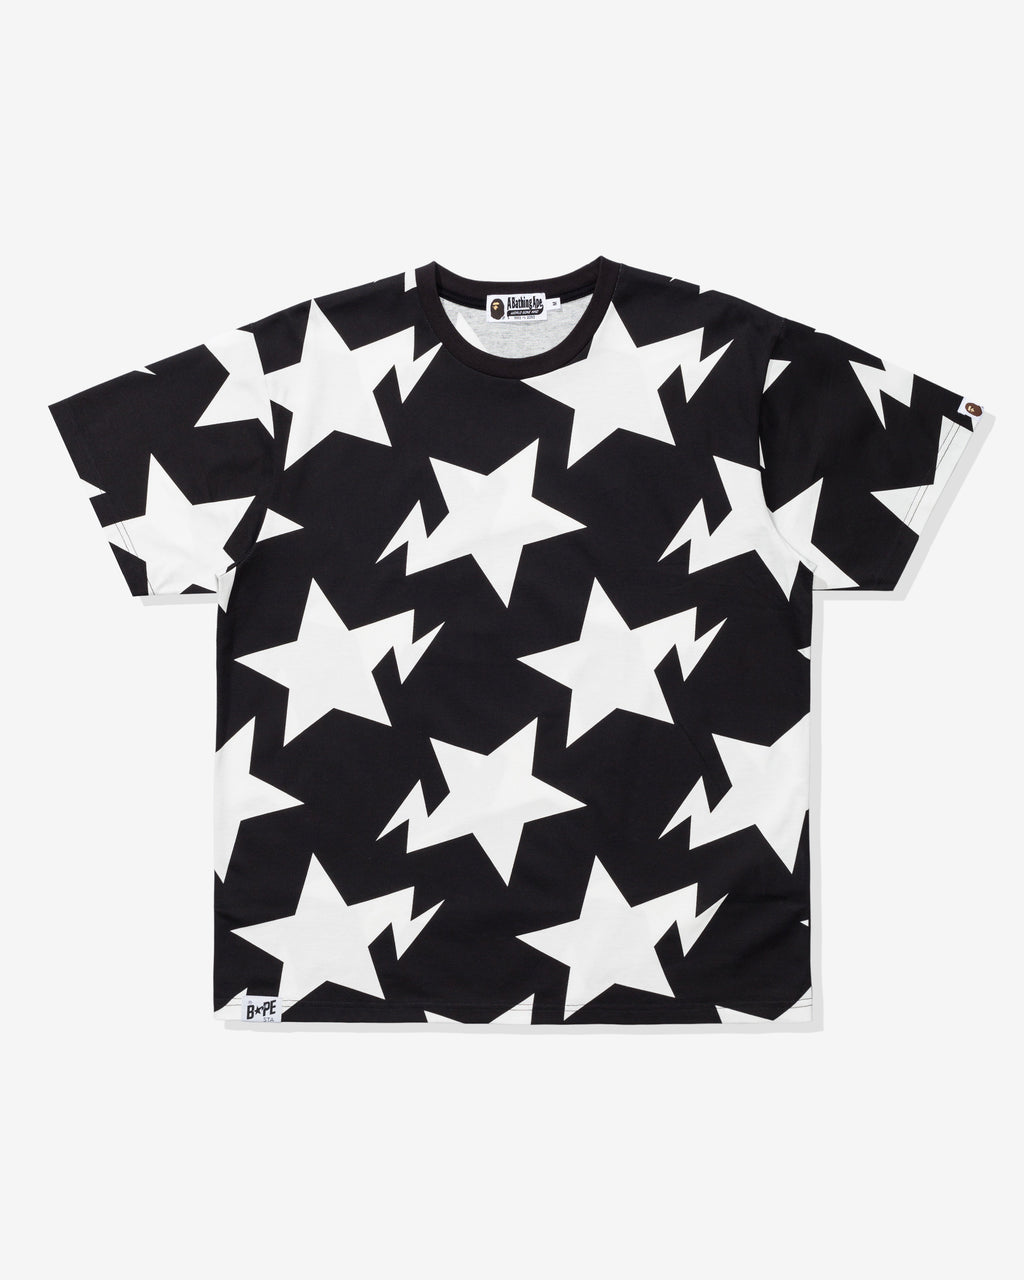 BAPE RELAXED STA PATTERN TEE - BLACK